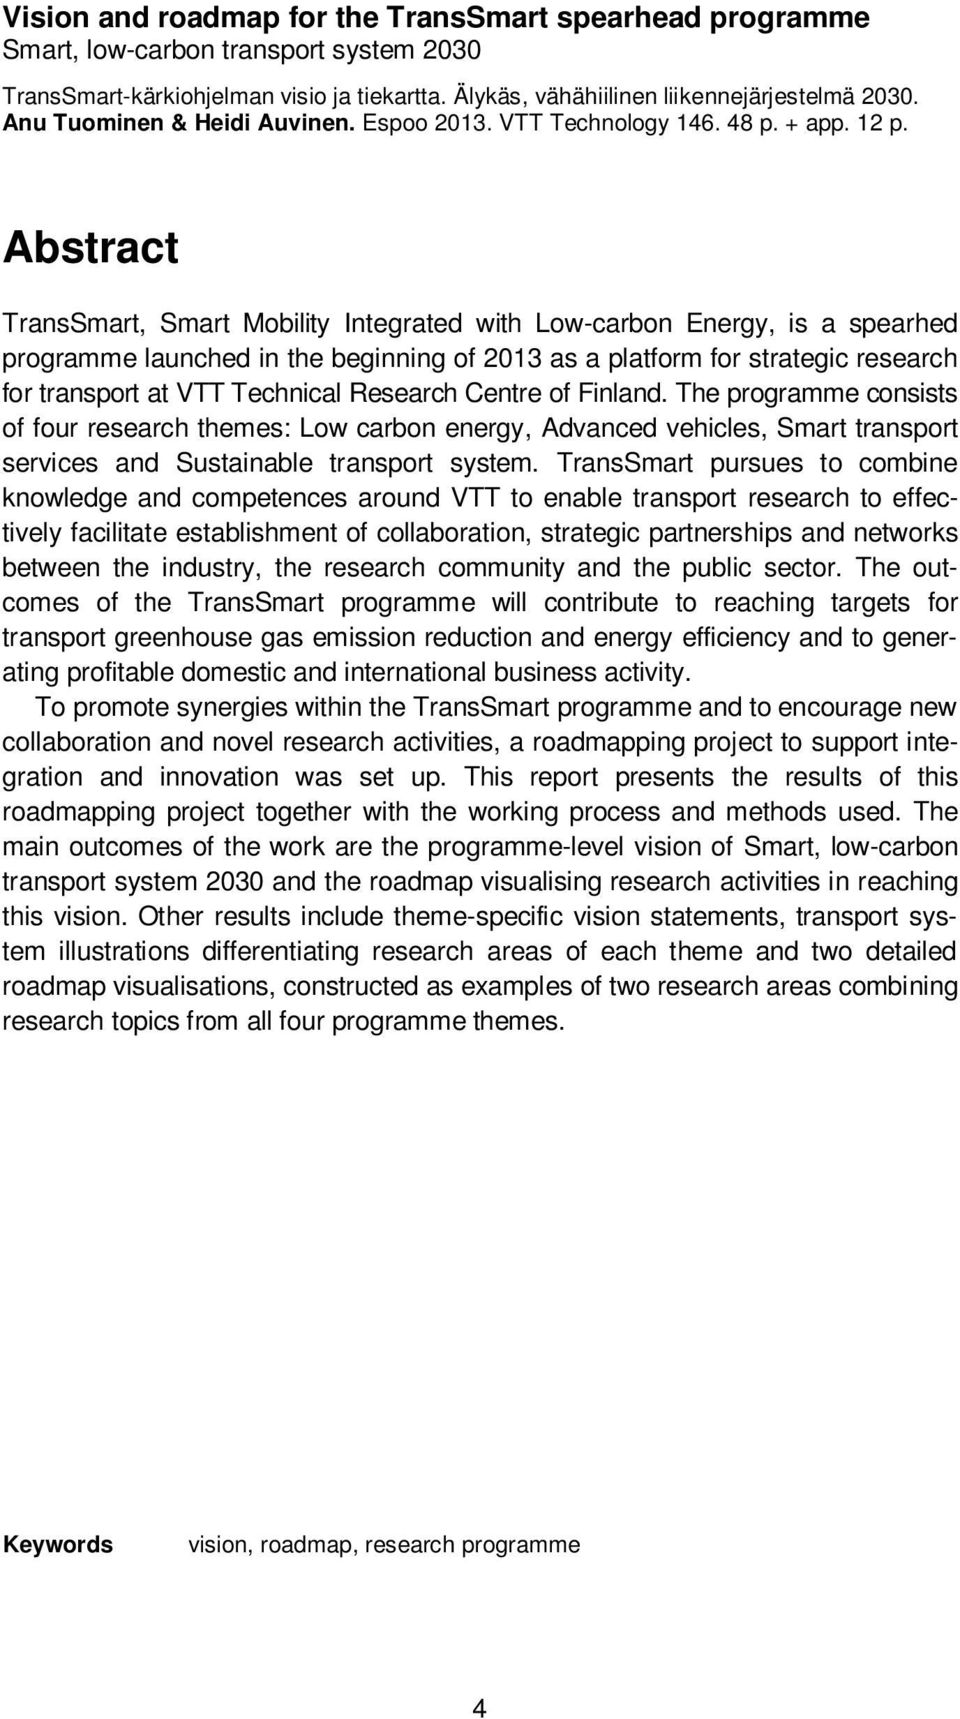 Abstract TransSmart, Smart Mobility Integrated with Low-carbon Energy, is a spearhed programme launched in the beginning of 2013 as a platform for strategic research for transport at VTT Technical